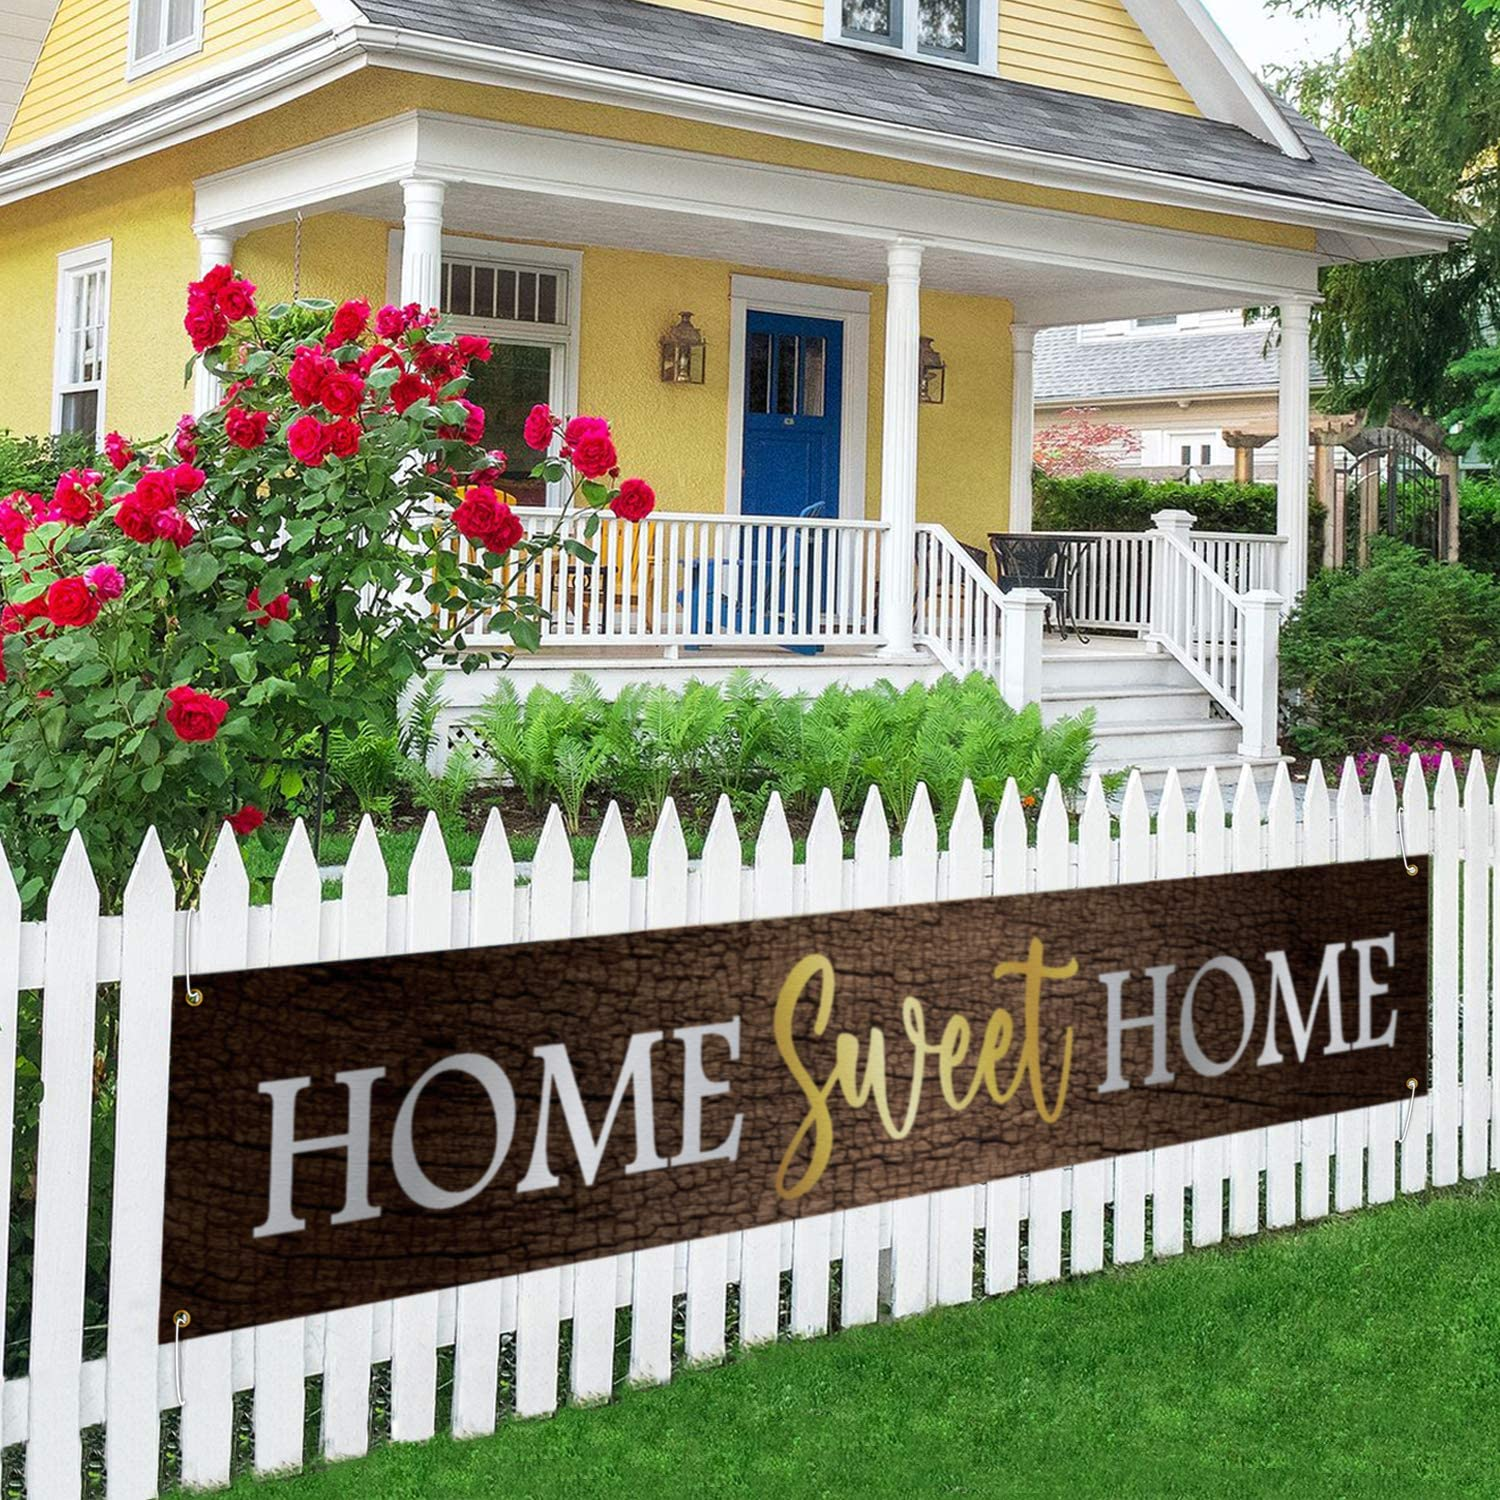 Home Sweet Home Large Banner, New Home Lawn Decor, Welcome Home Porch Sign, Housewarming Gift, Indoor Outdoor Backdrop 8.9 x 1.6 Feet